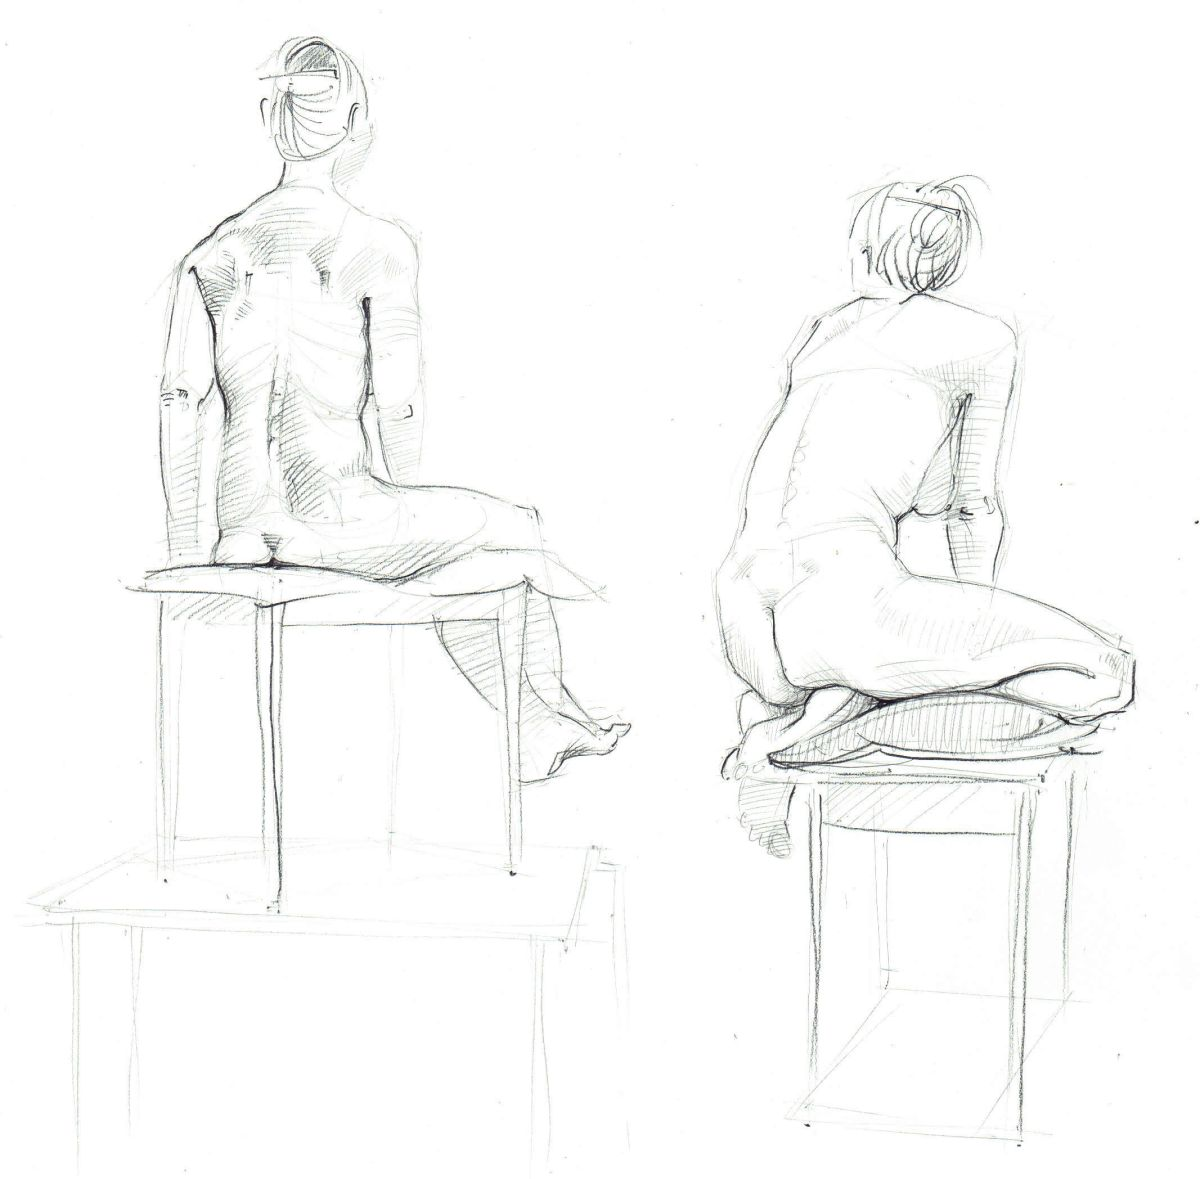 Life Drawing, pencil on paper, Nancy Farmer Jan 2019